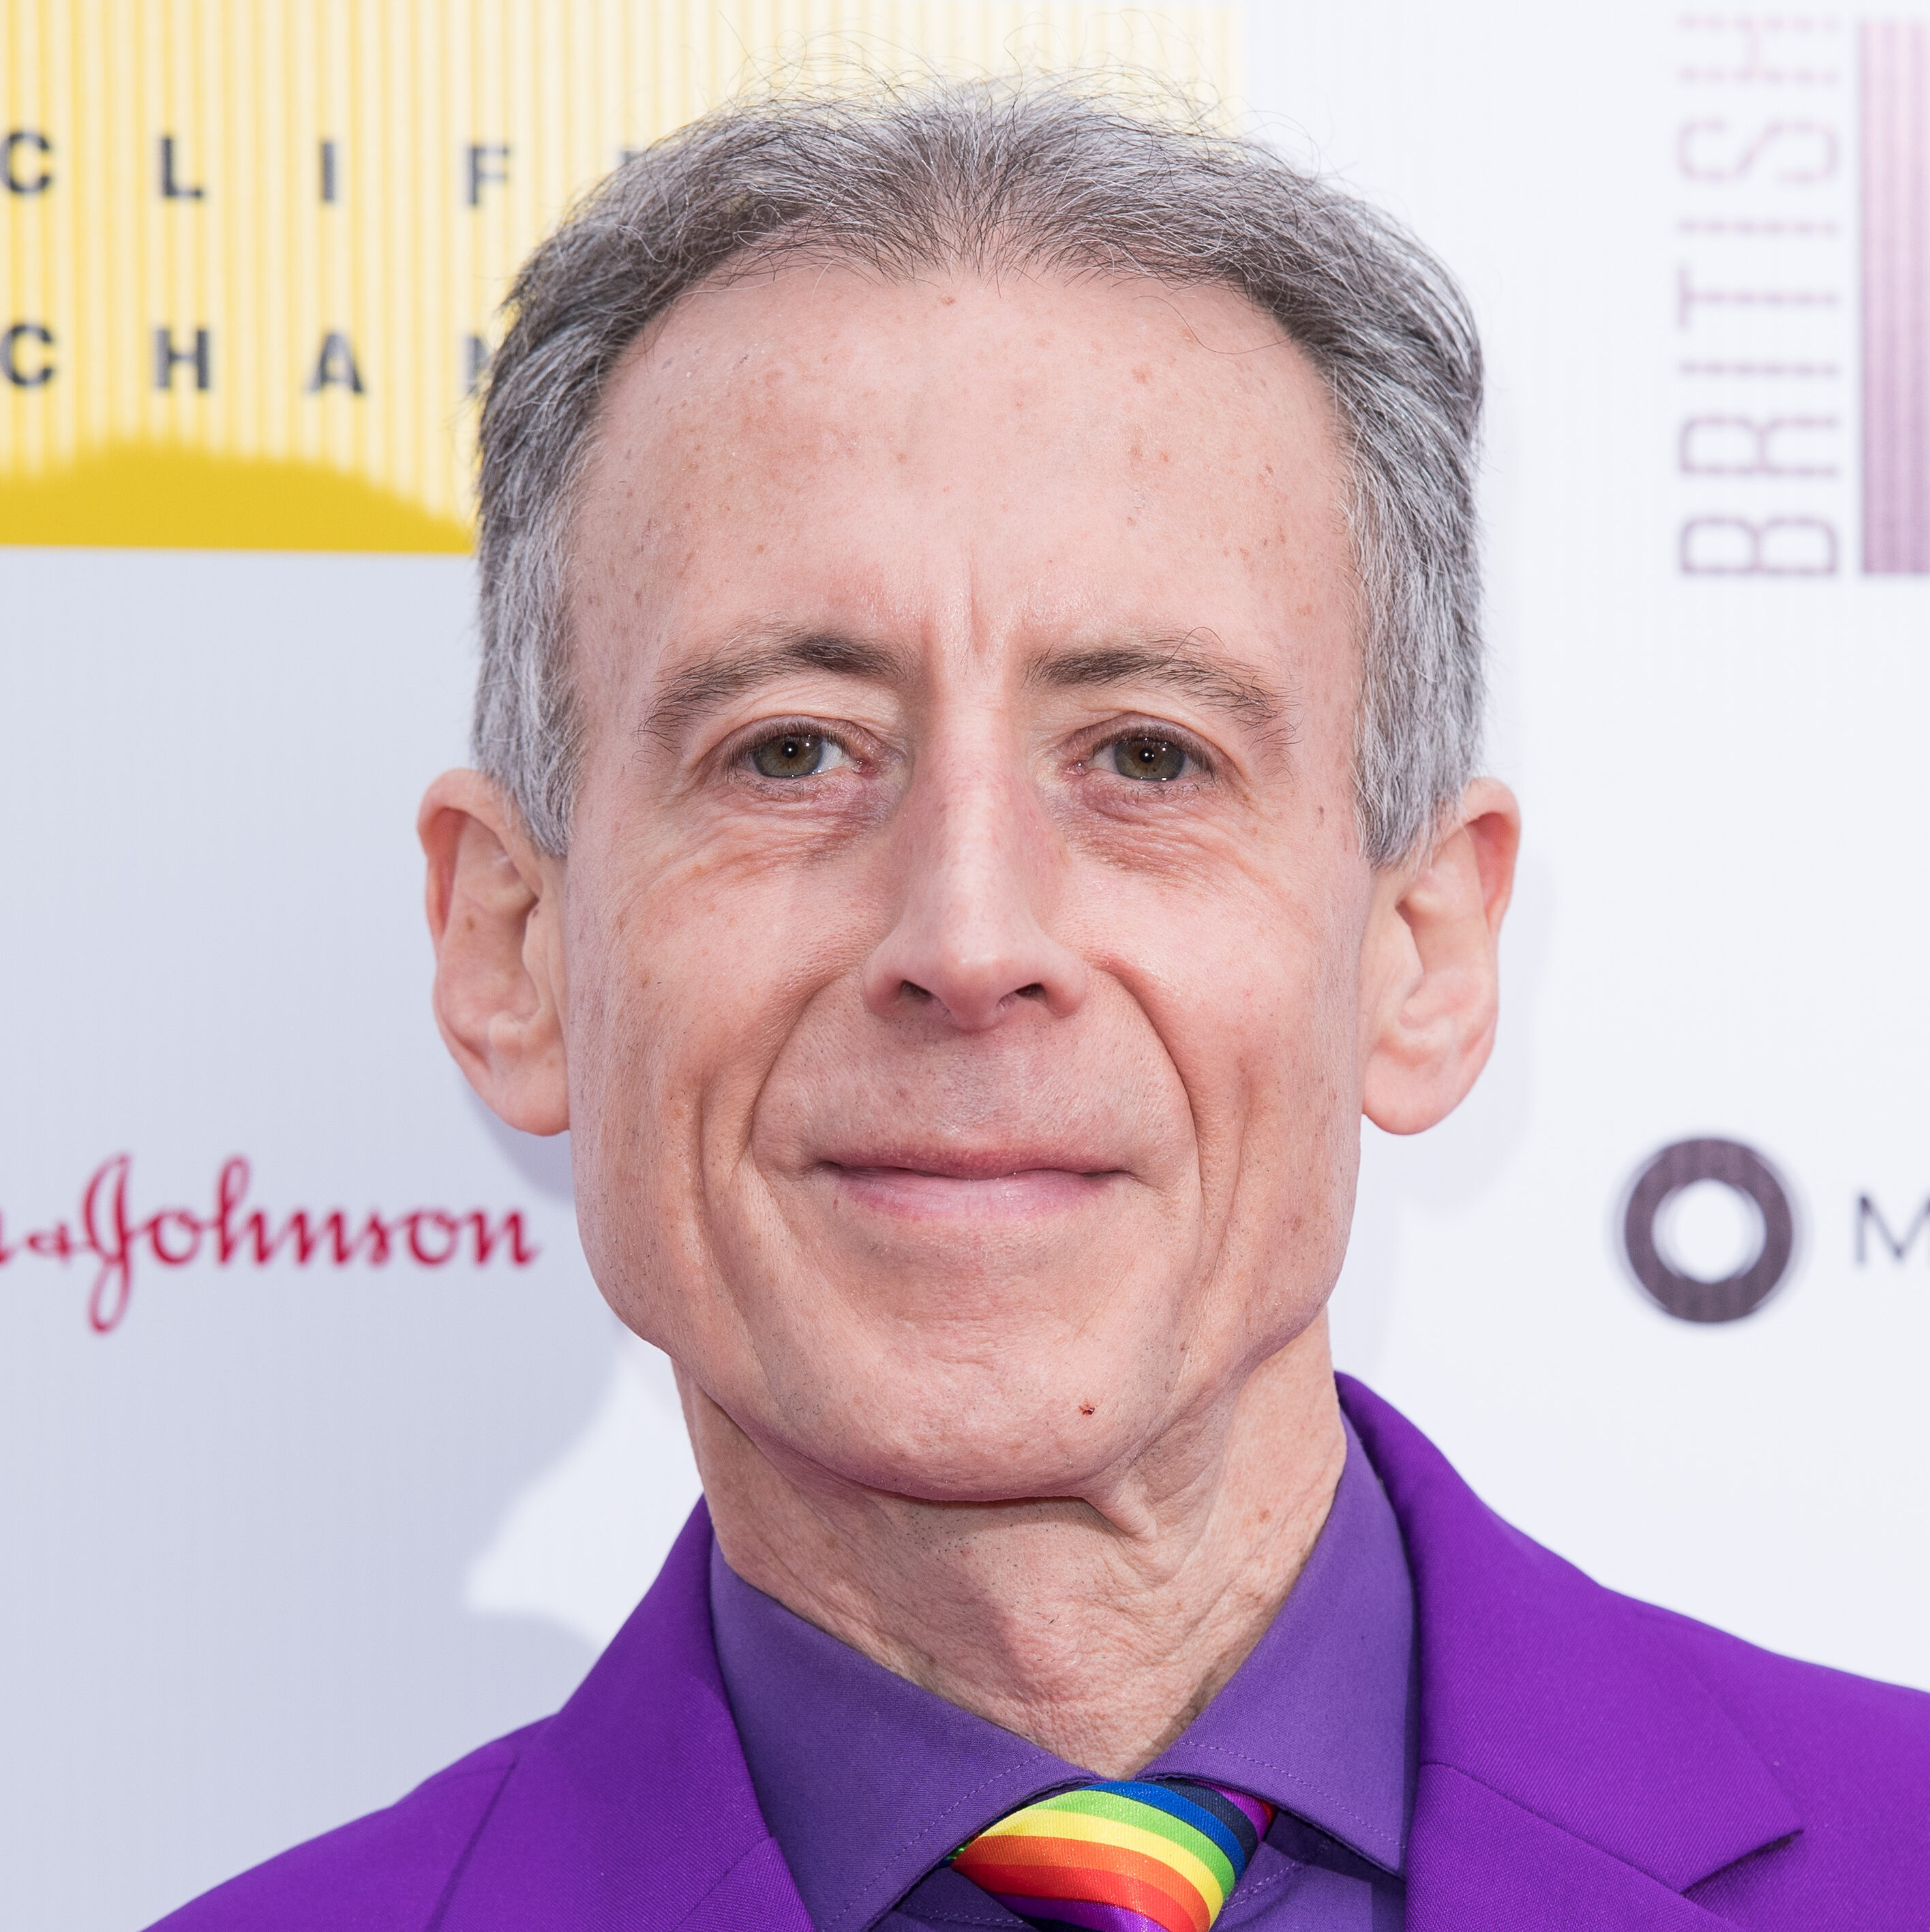 LGBT+ rights campaigner Peter Tatchell